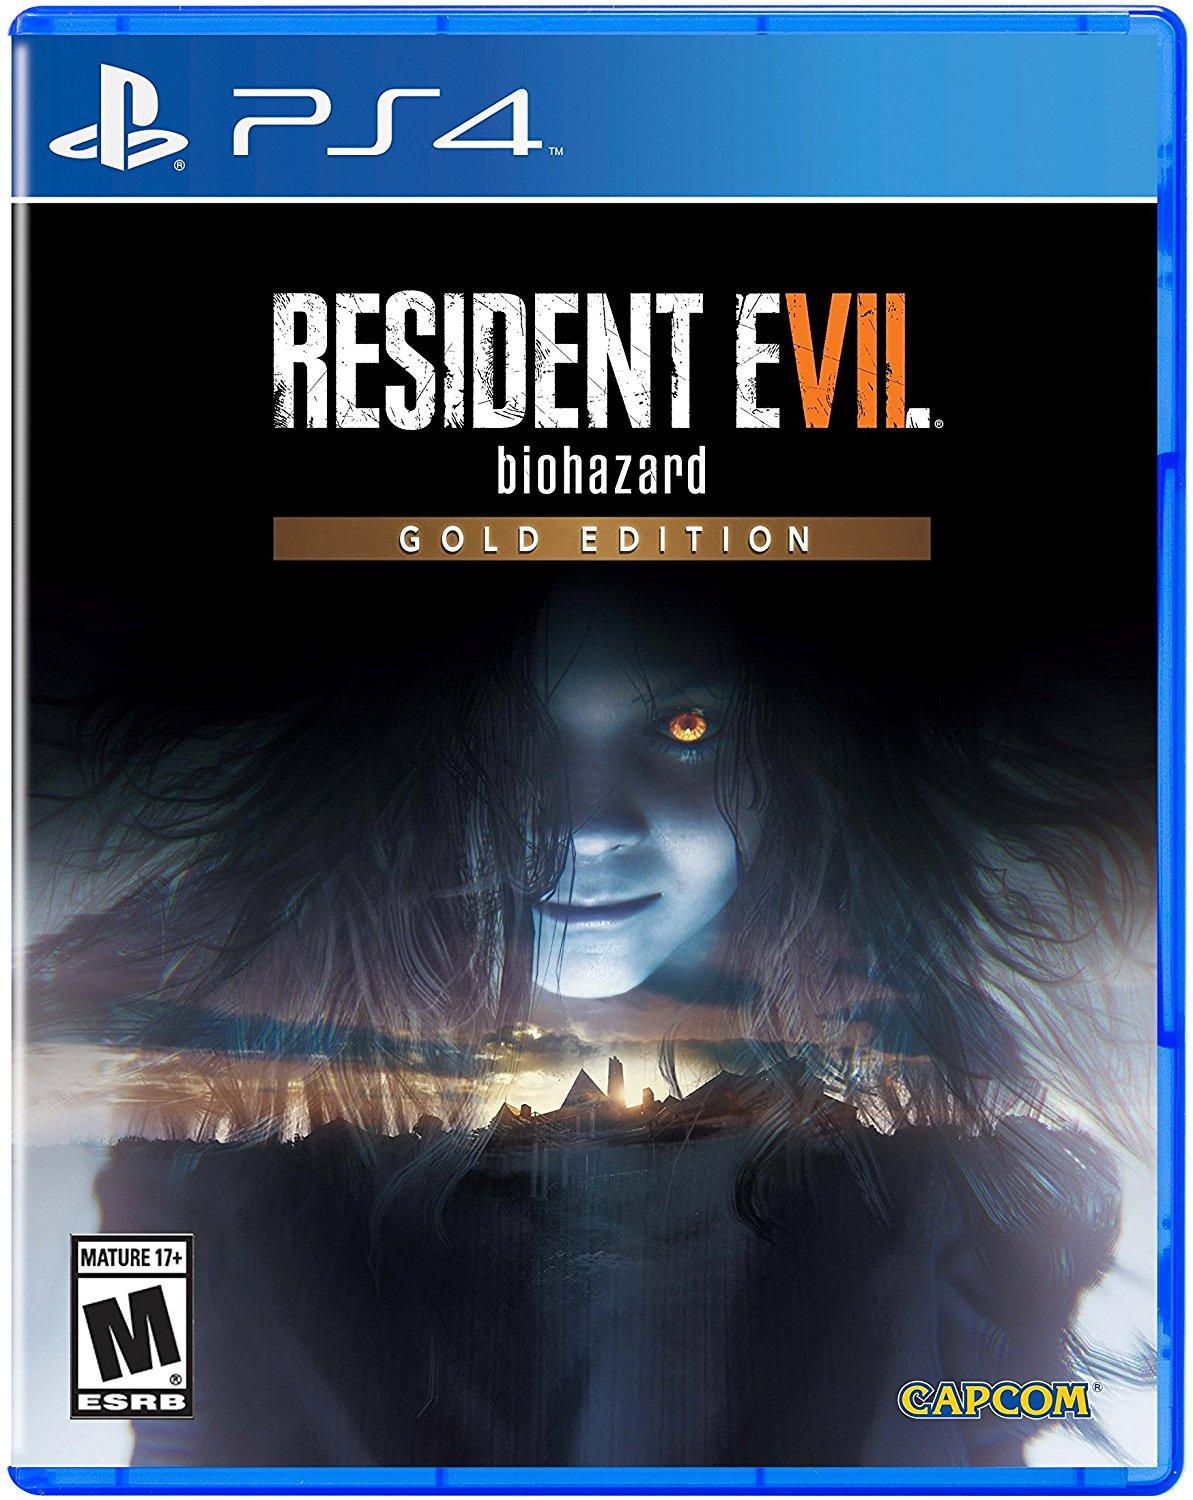 Truegamers Ps4 Video Games Accessories Buy Online Gt Sport Standard Edition R3 Resident Evil 7 Biohazard Gold Ed Chn Eng